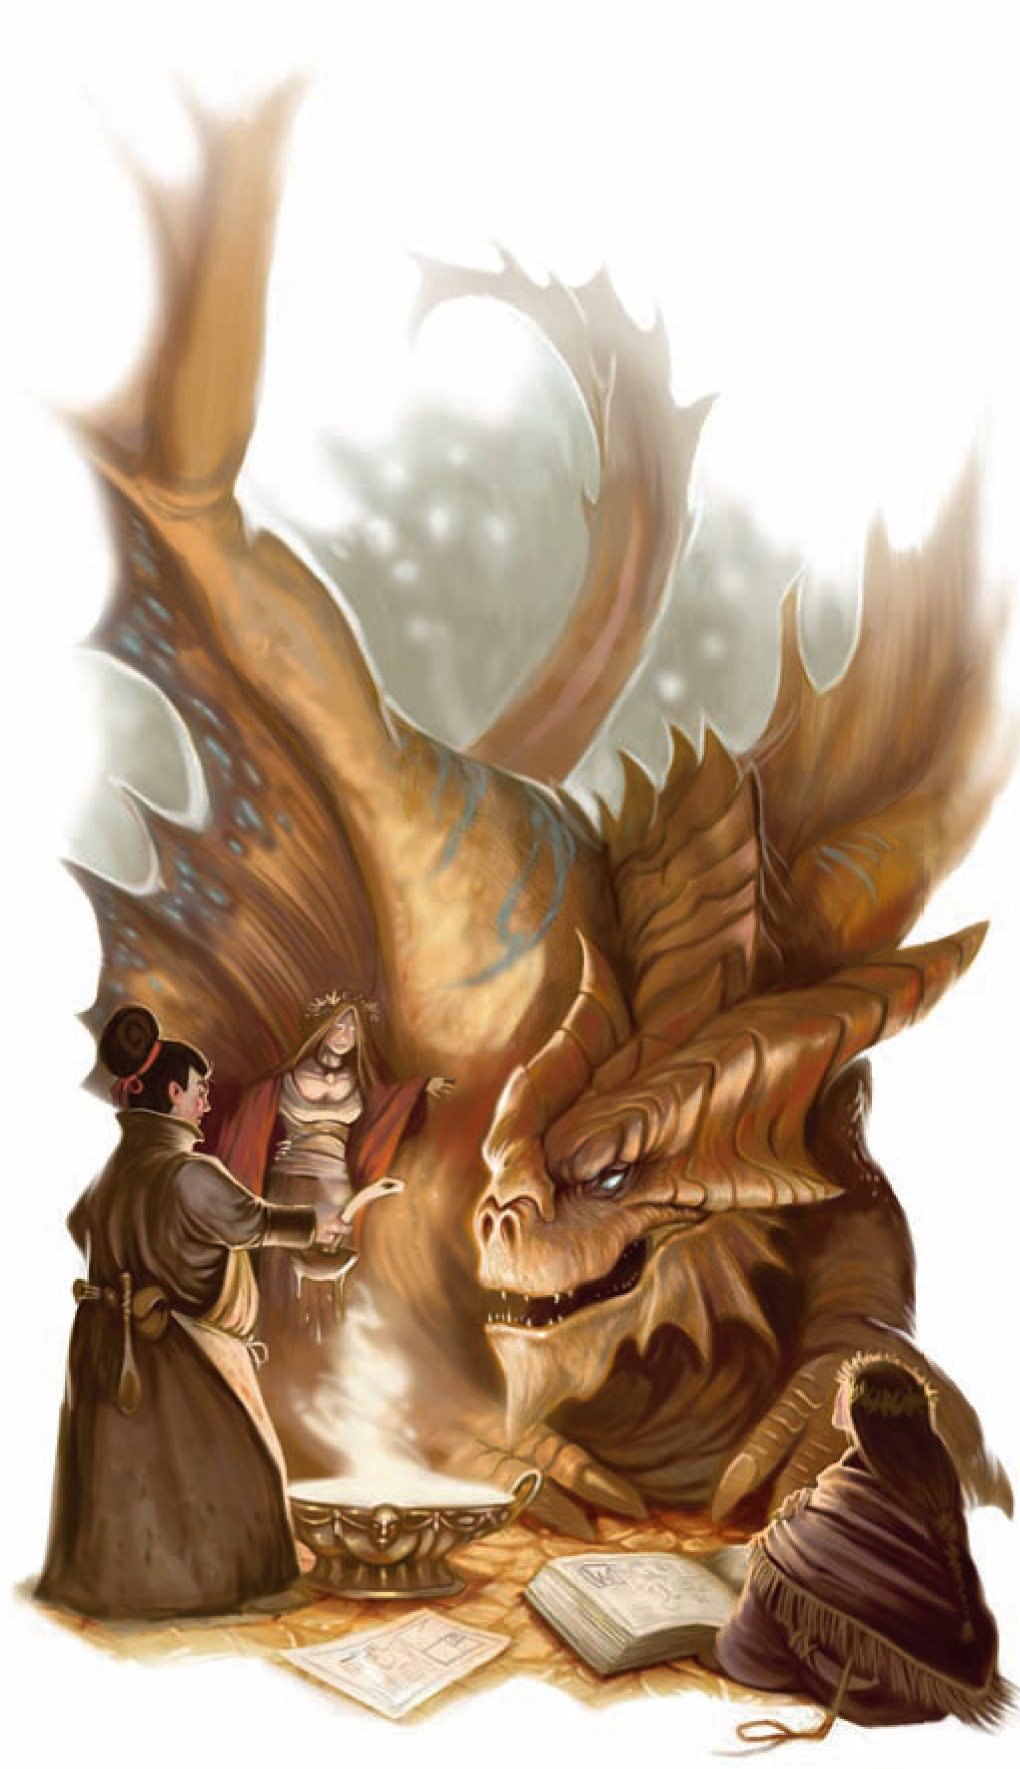 Dragons as Friends of All Sizes  Not just Foes or Enemies